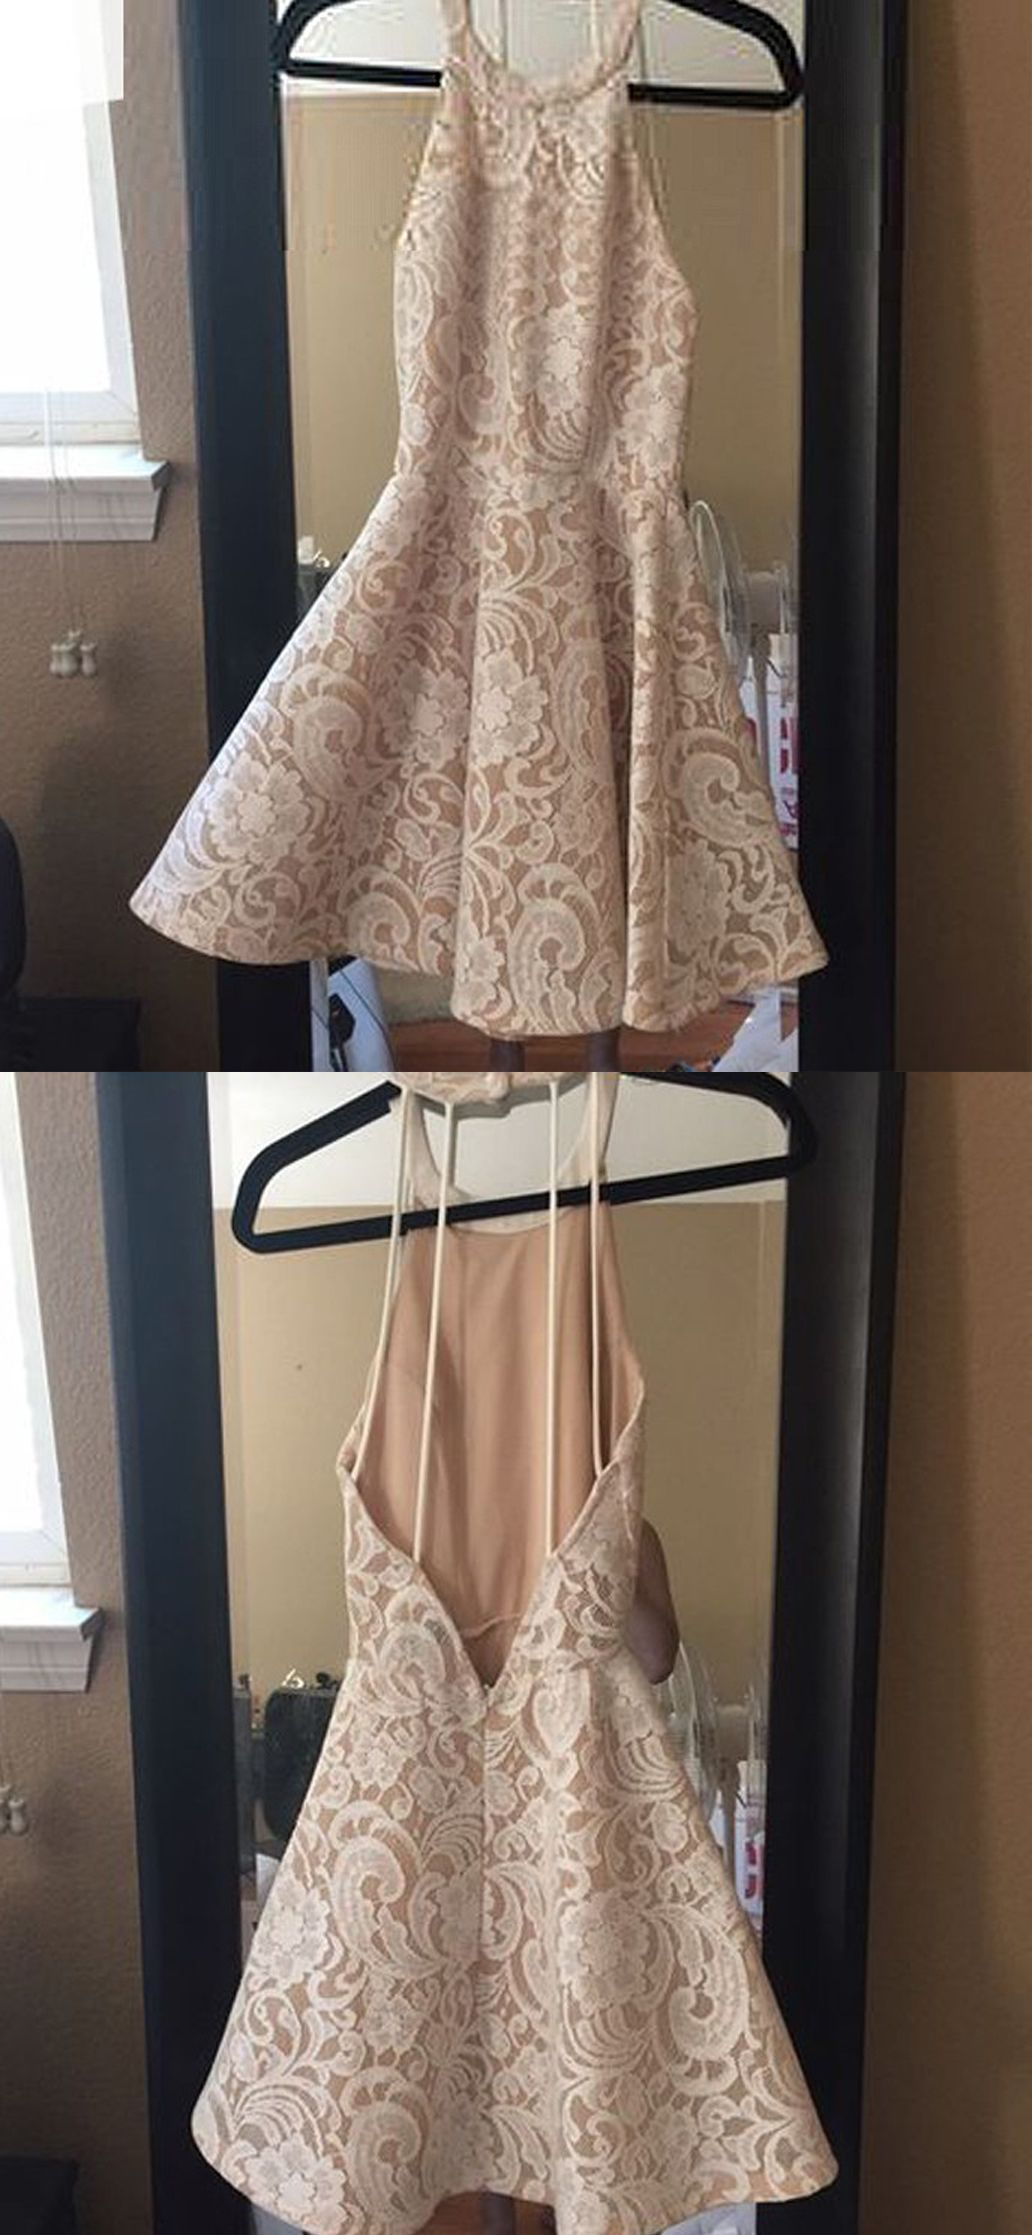 Aline jewel backless short champagne lace homecoming dress does